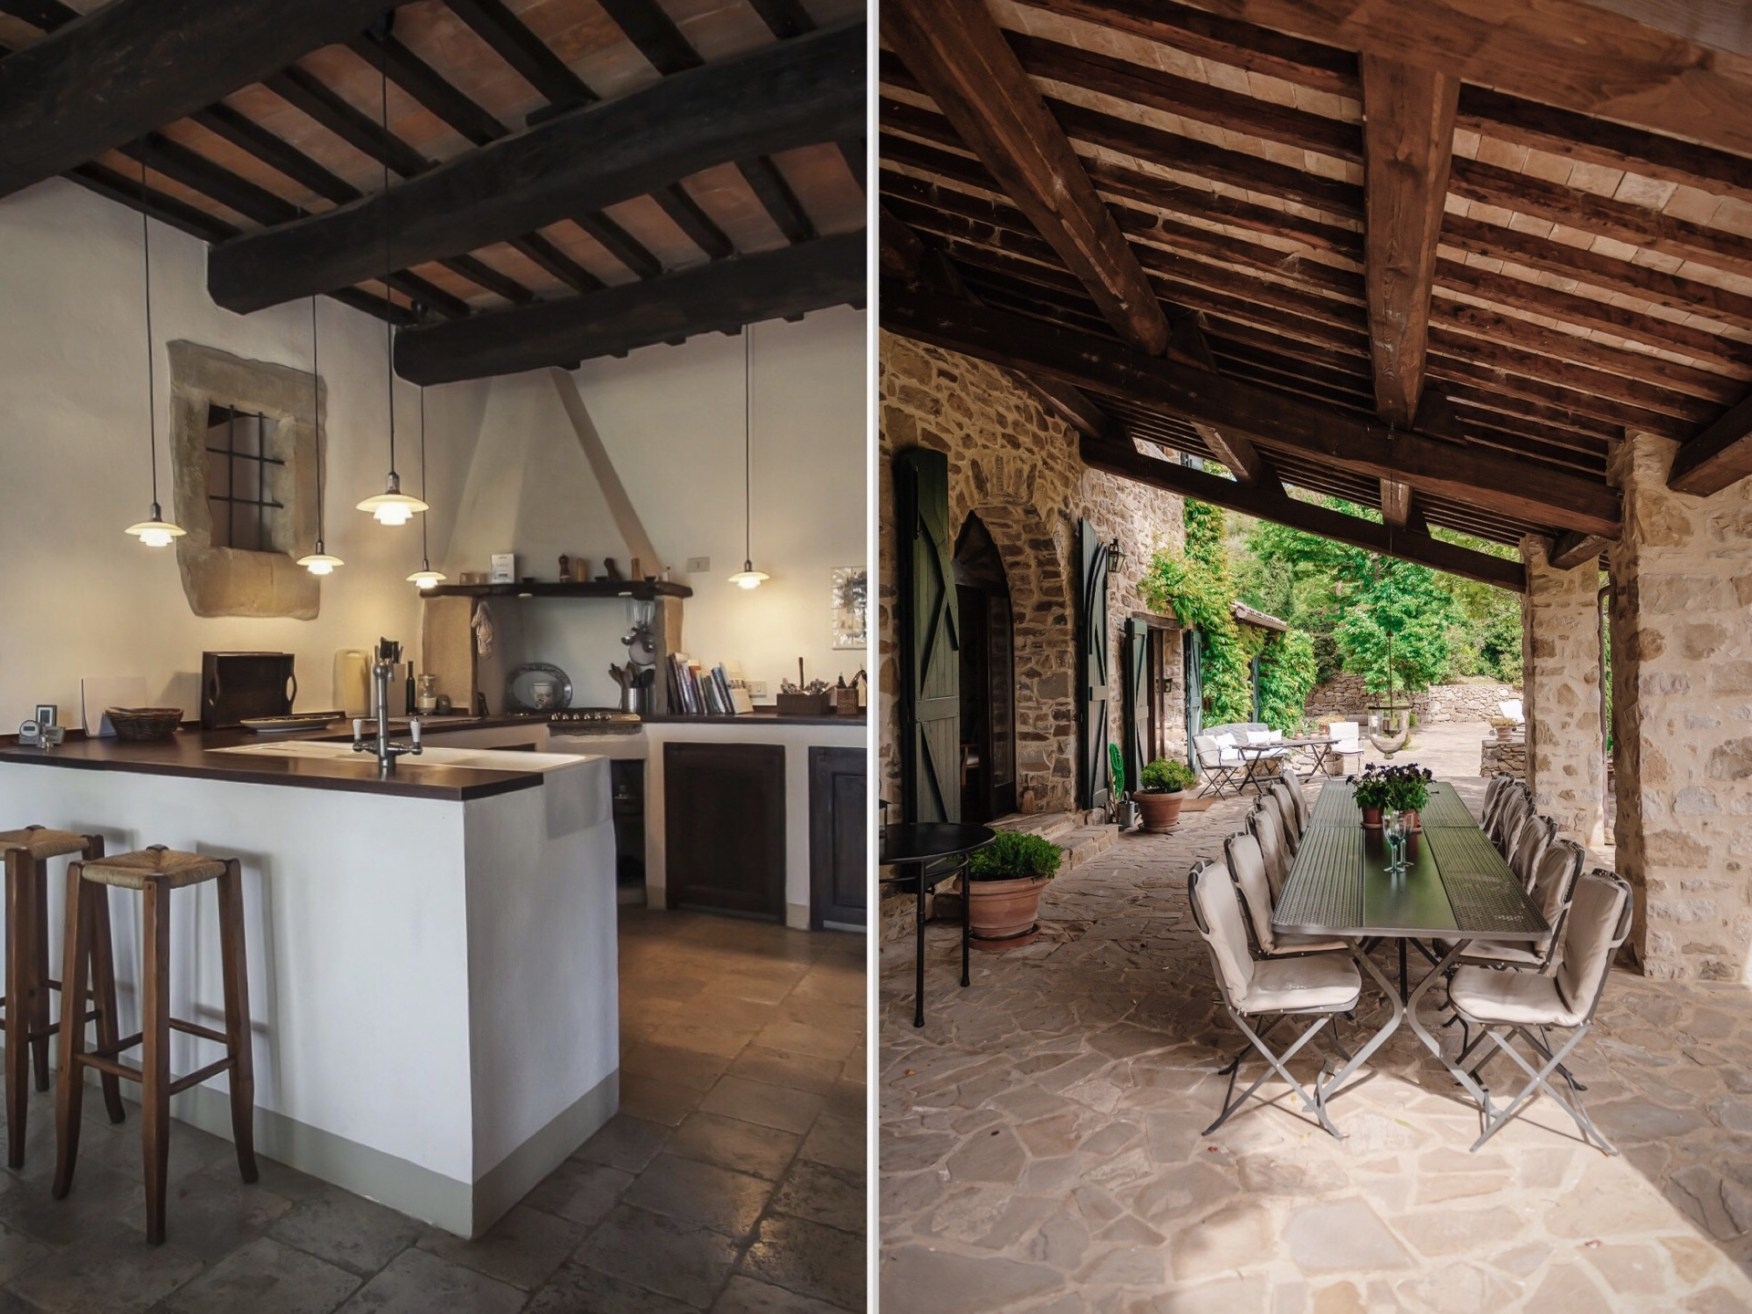 stone house kitchen and terrace